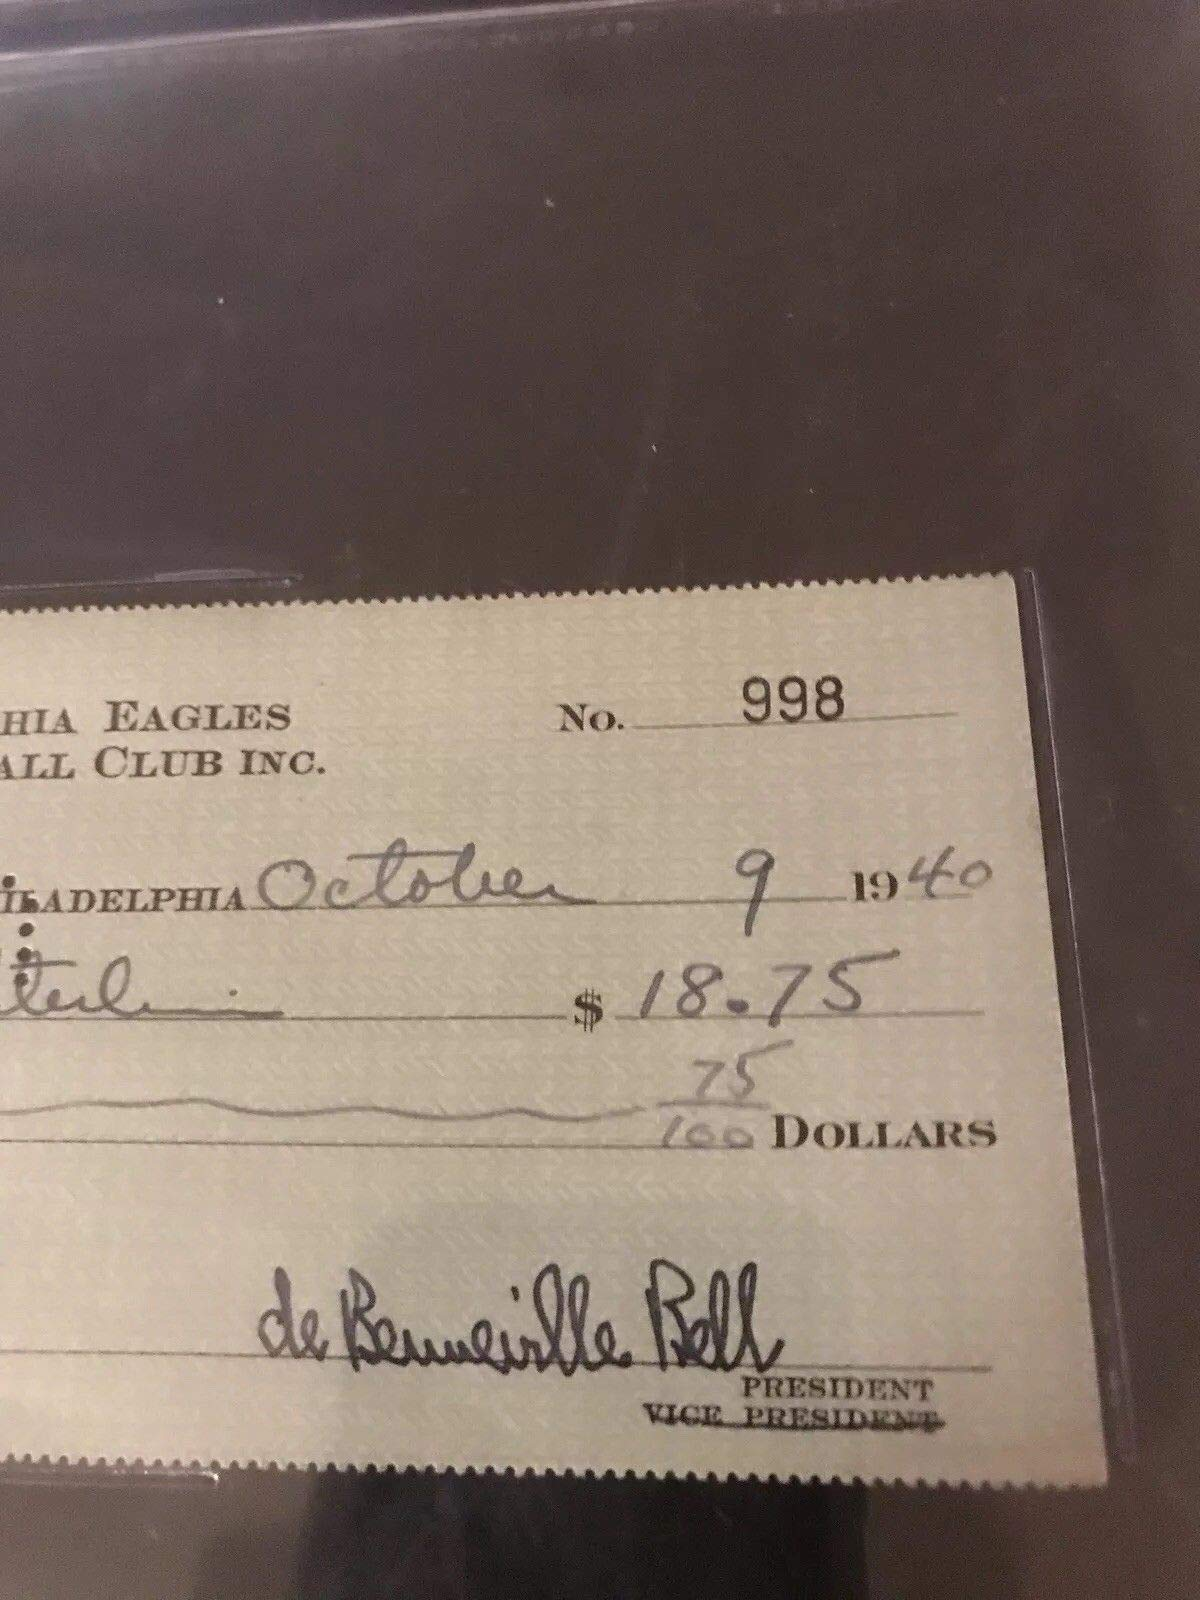 Bert Bell Philadelpia Eagles HOF Autographed Signed Check JSA Authentic Beckett Authentic Slabbed